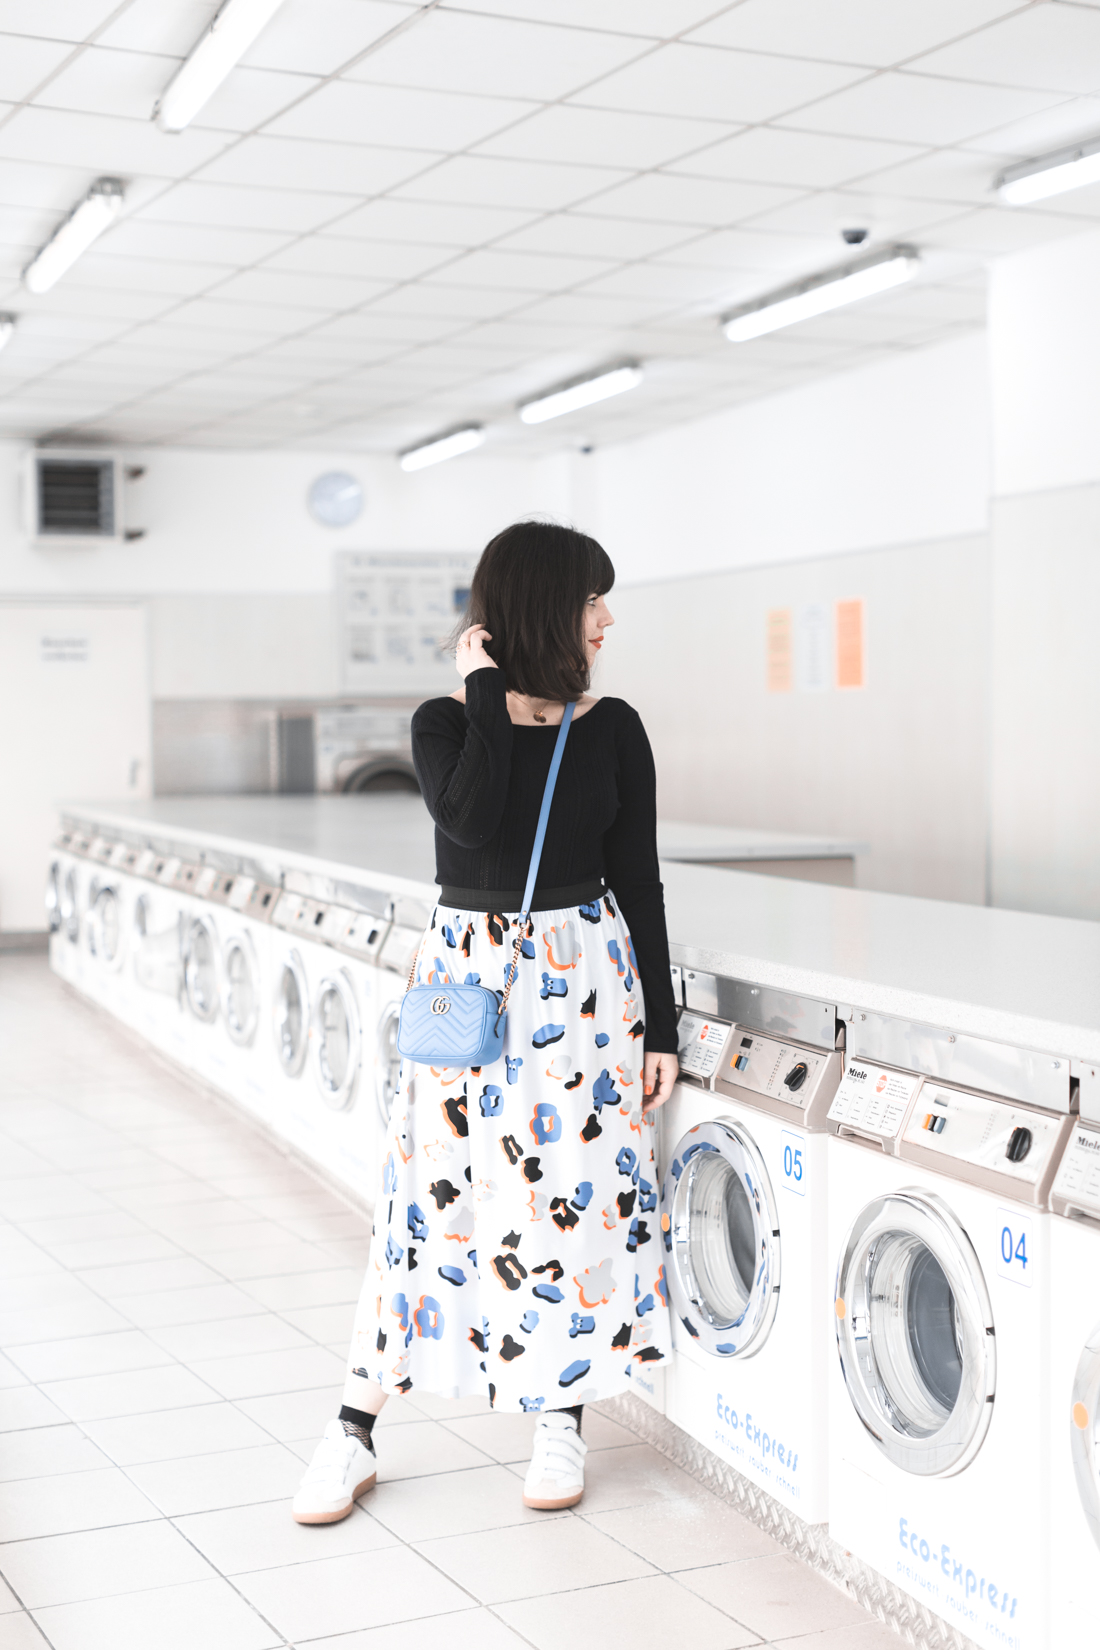 ariel_giles_deacon_blogger_laundromat_photoshoot_copyright_Pauline_Privez_paulinefashionblog_com-1